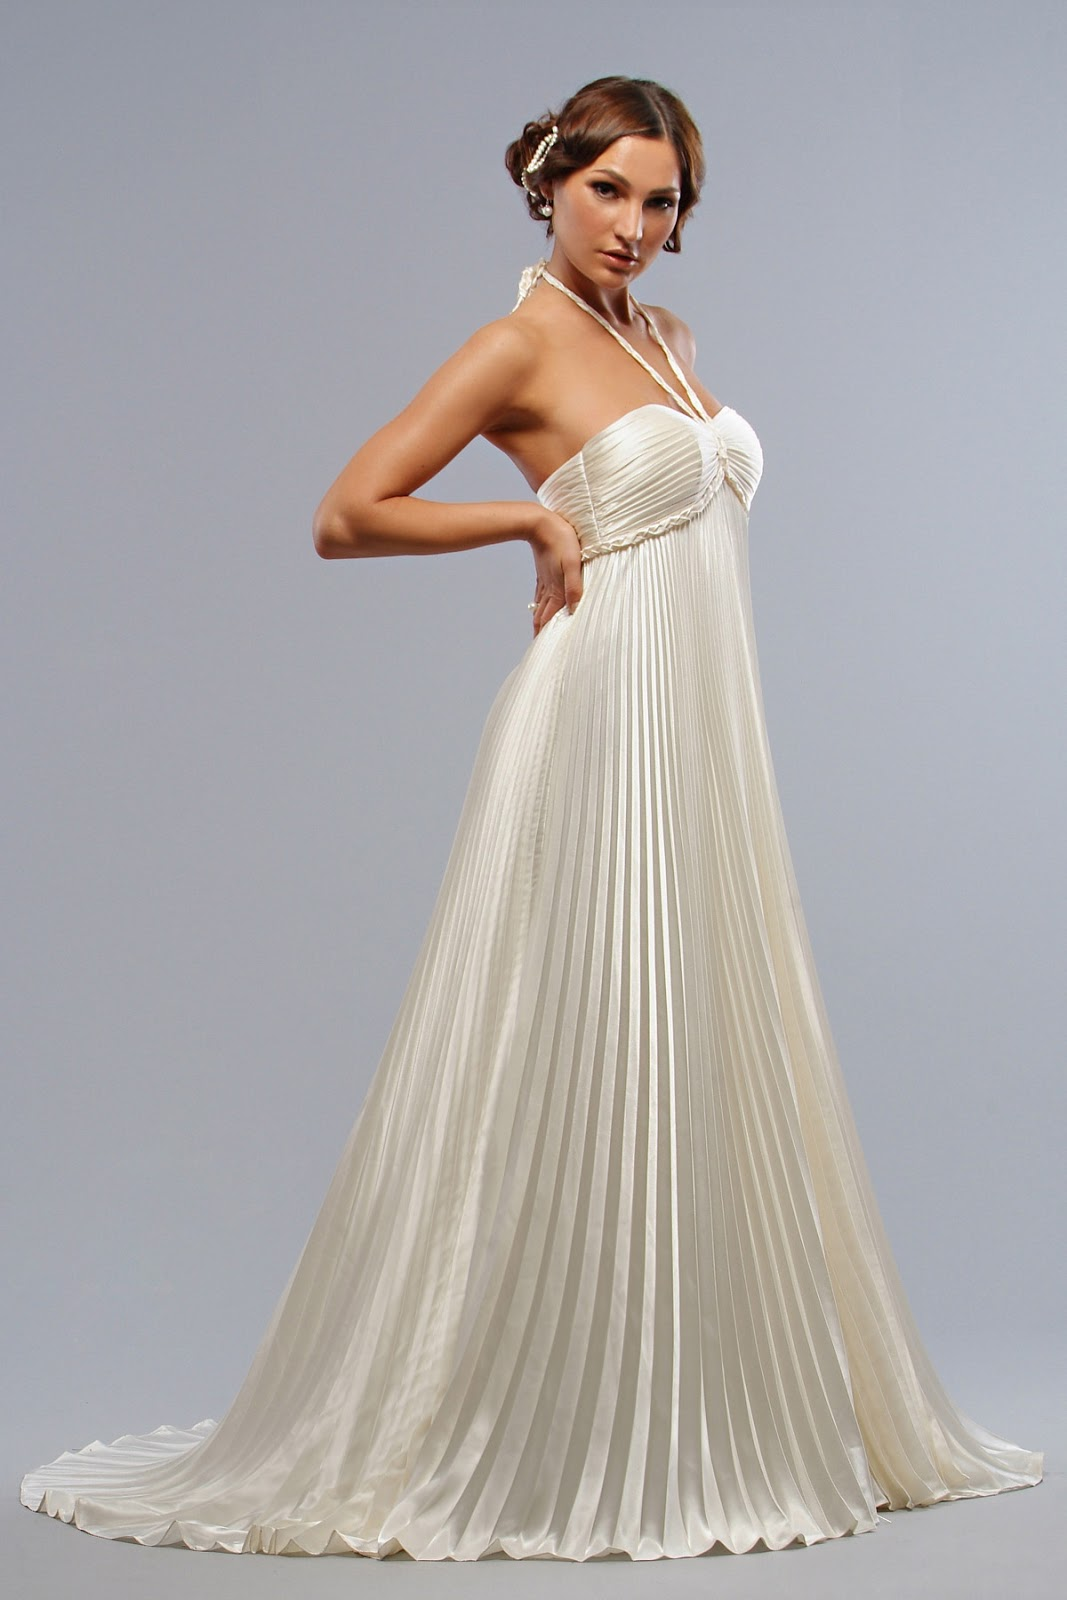 Dressybridal wedding dresses 2014 first look for Wedding dresses for bridesmaid